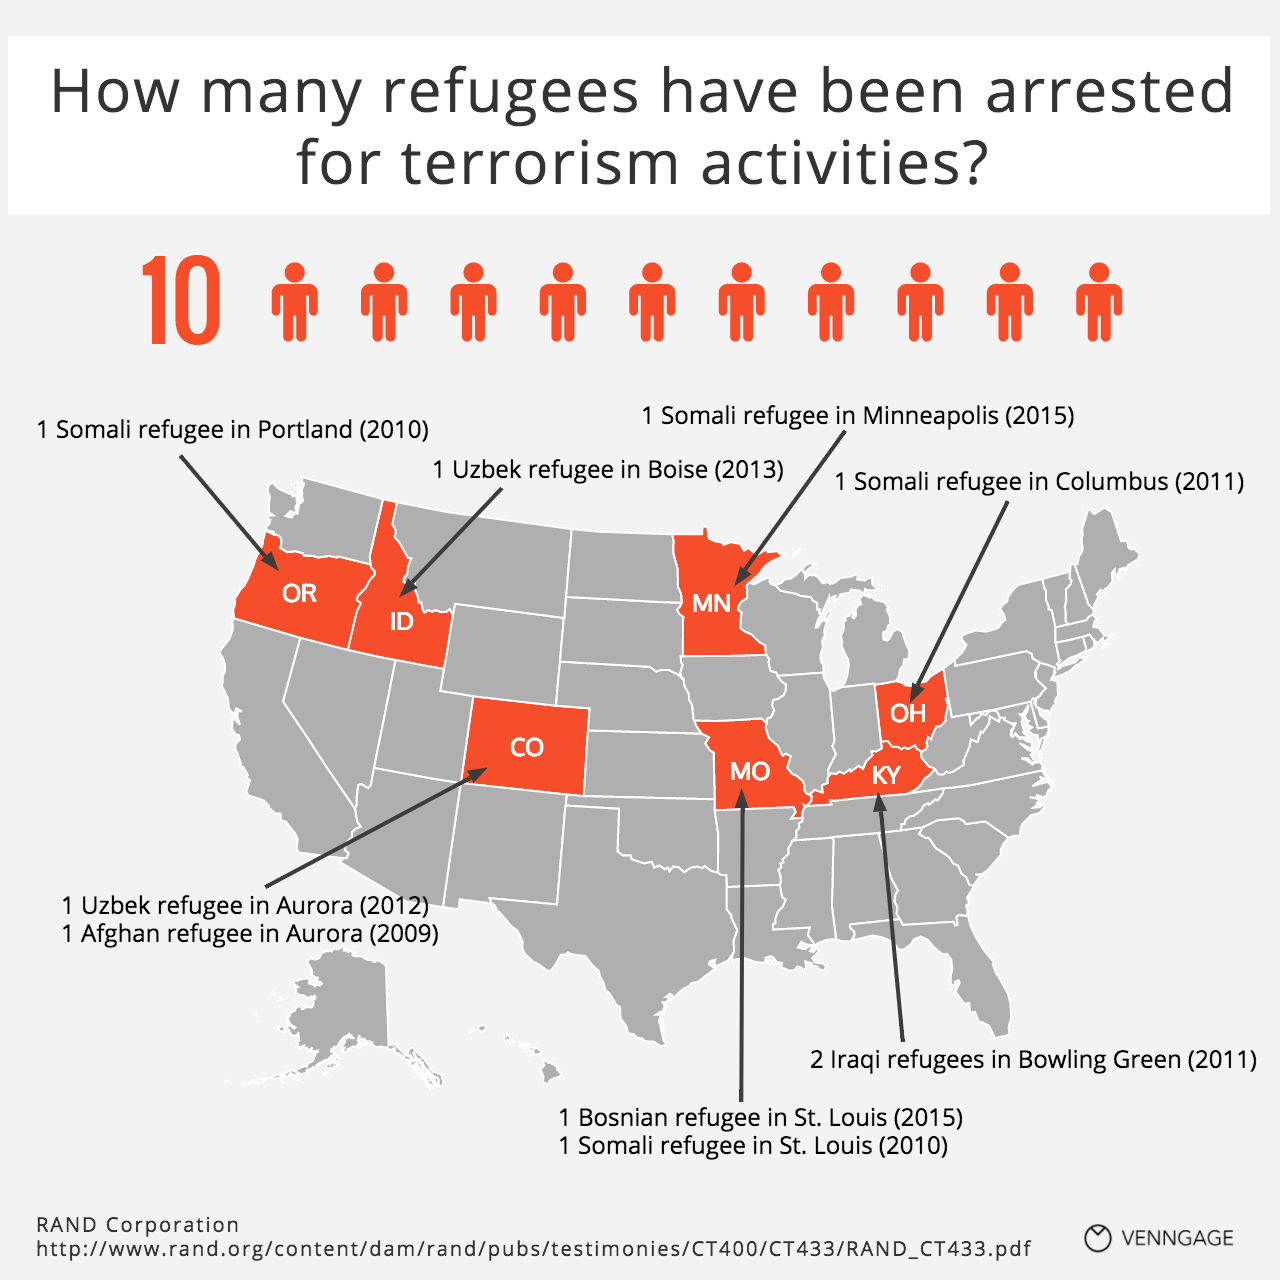 13 Questions About Refugees Answered With Charts - Venngage